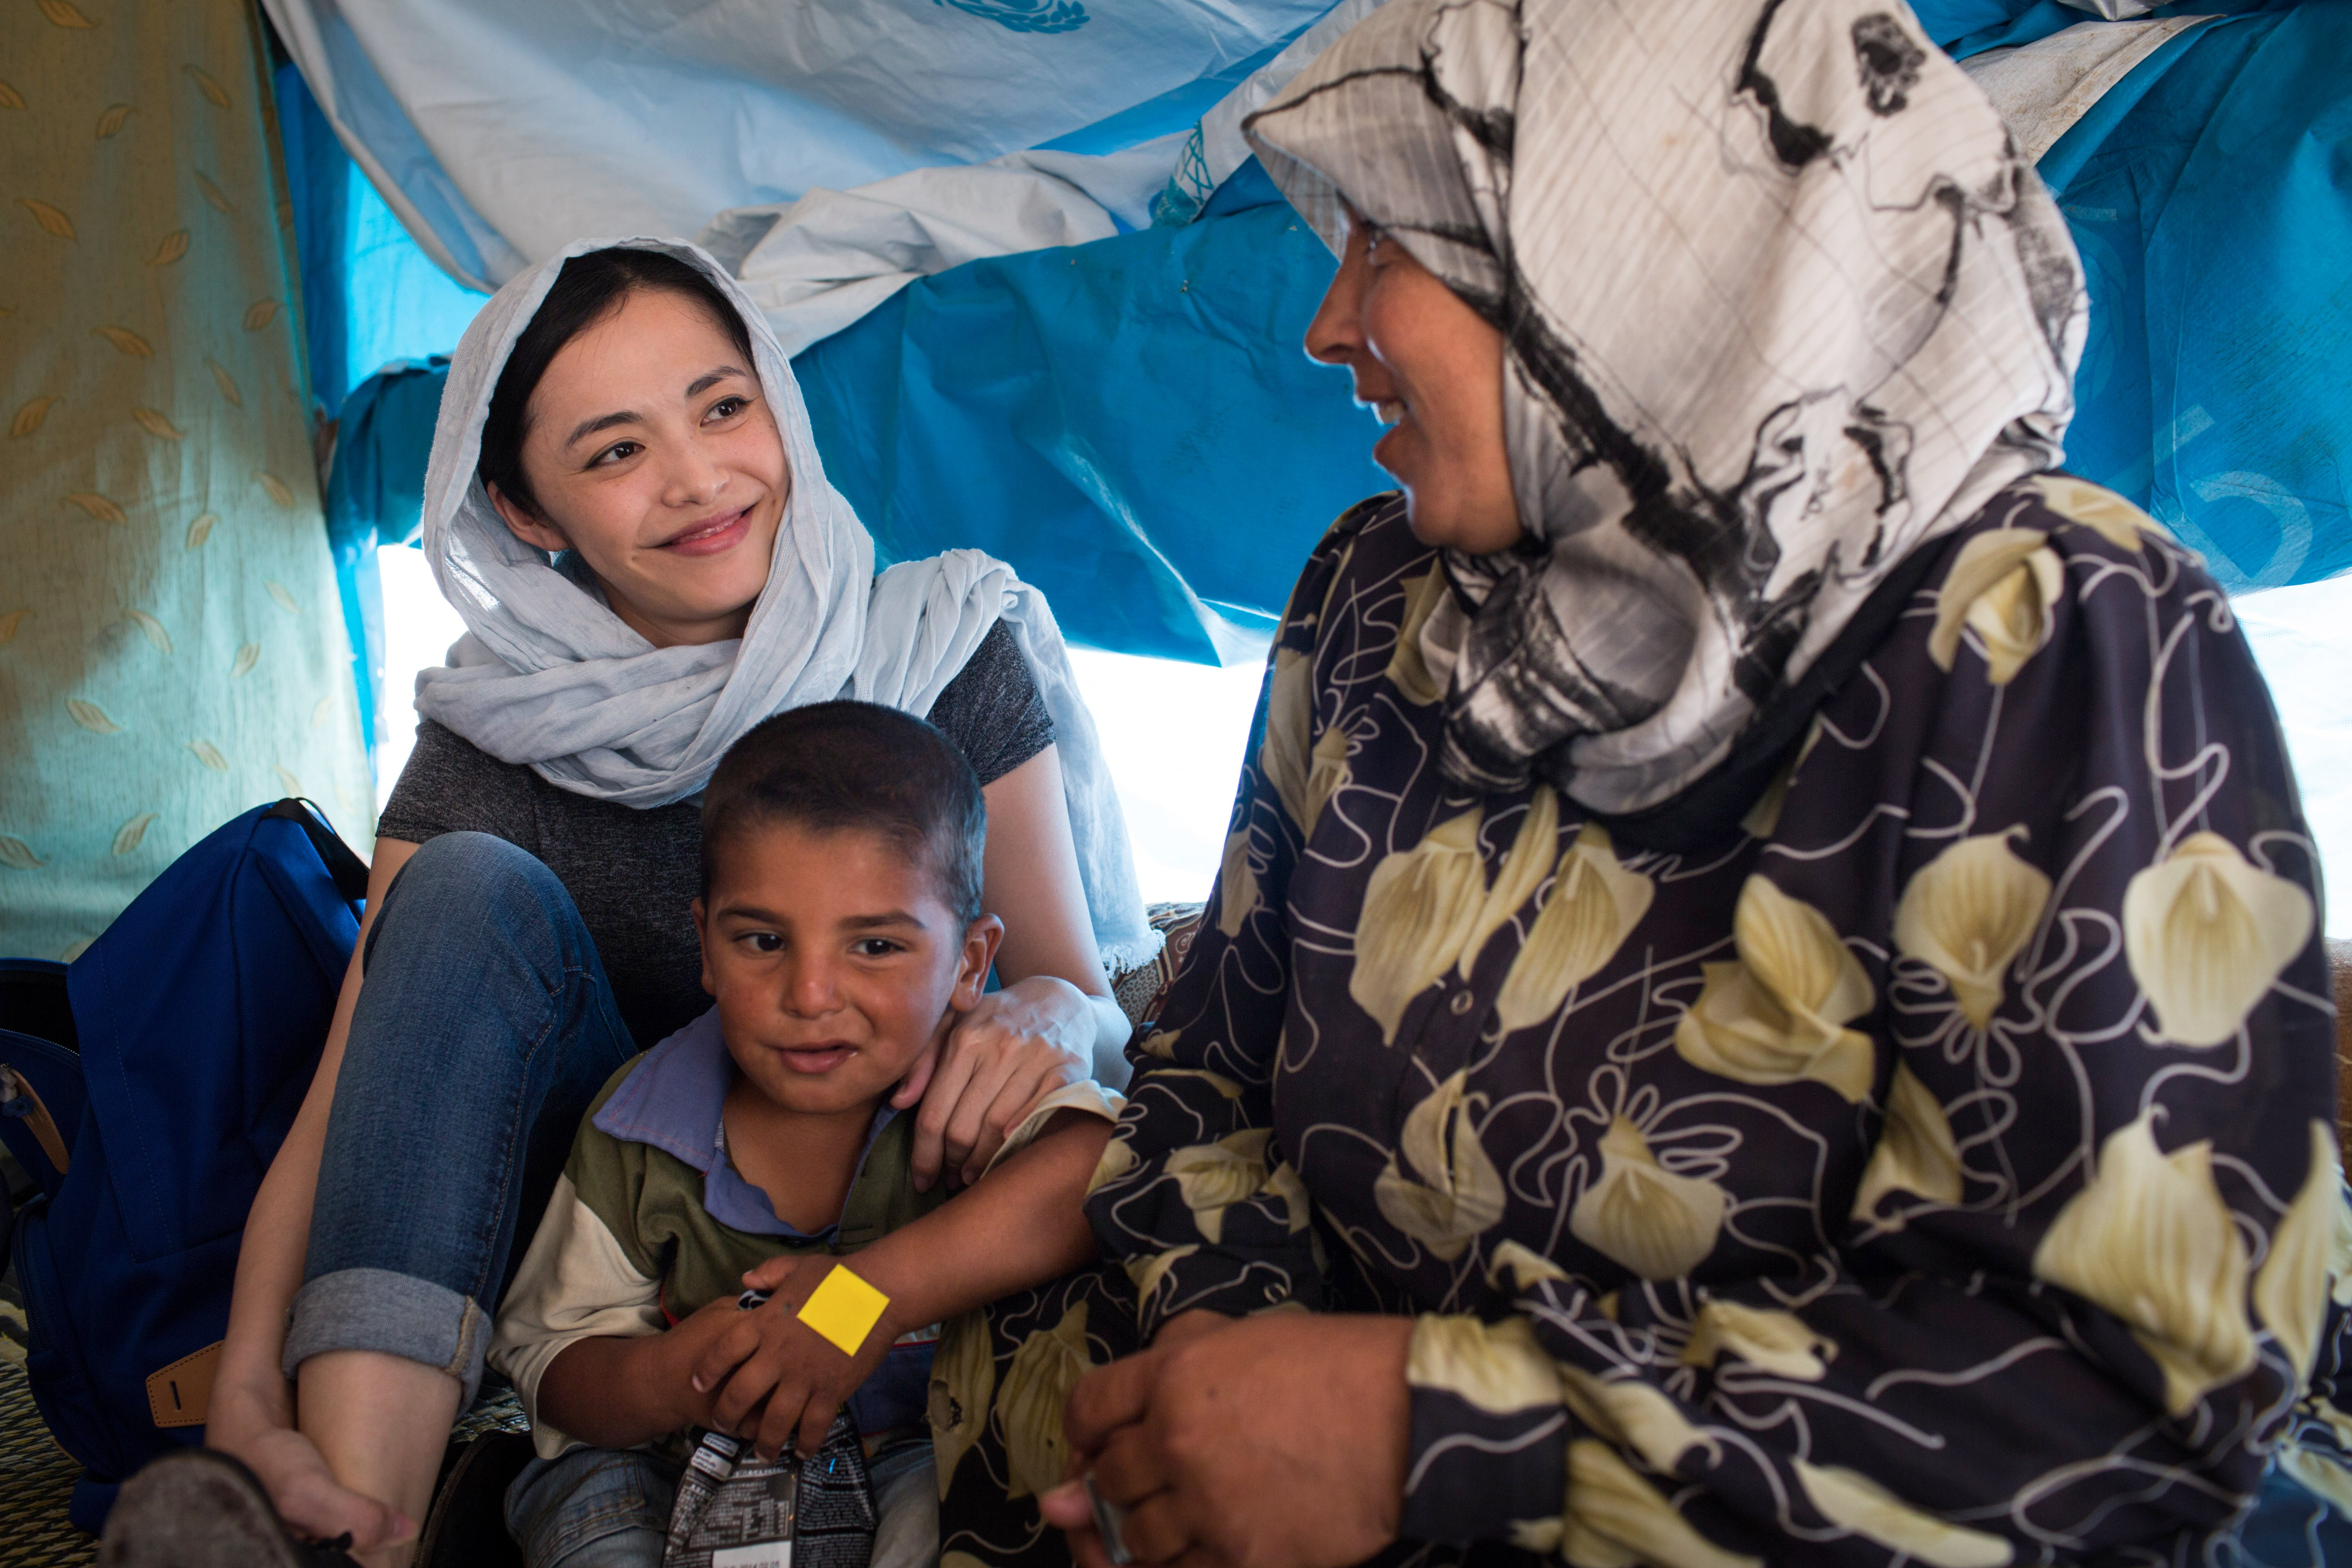 Lebanon / Syrian Refugees / Chinese actress Yao Shen meets Syrian refugees at a collective shelter in Tyre, Lebanon, on Tuesday, May 20, 2014. / UNHCR / A. McConnell / May 2014